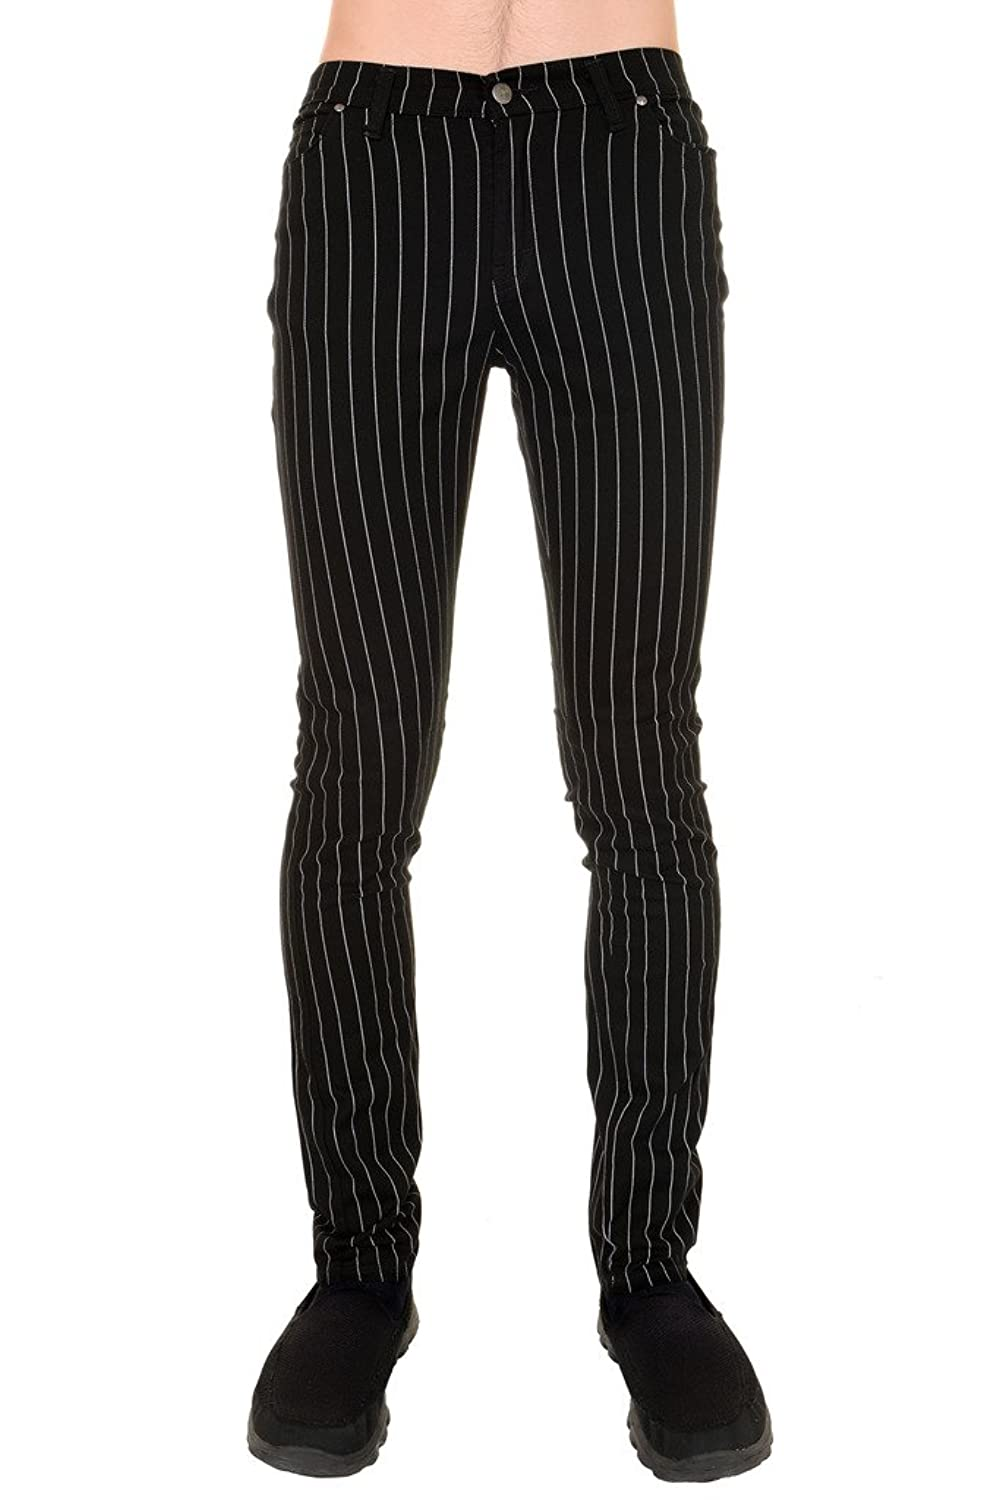 60s – 70s Mens Bell Bottom Jeans, Flares, Disco Pants Run Fly Retro 60s 70s Mod Black White Pin Striped Stretch Skinny Jeans $51.95 AT vintagedancer.com